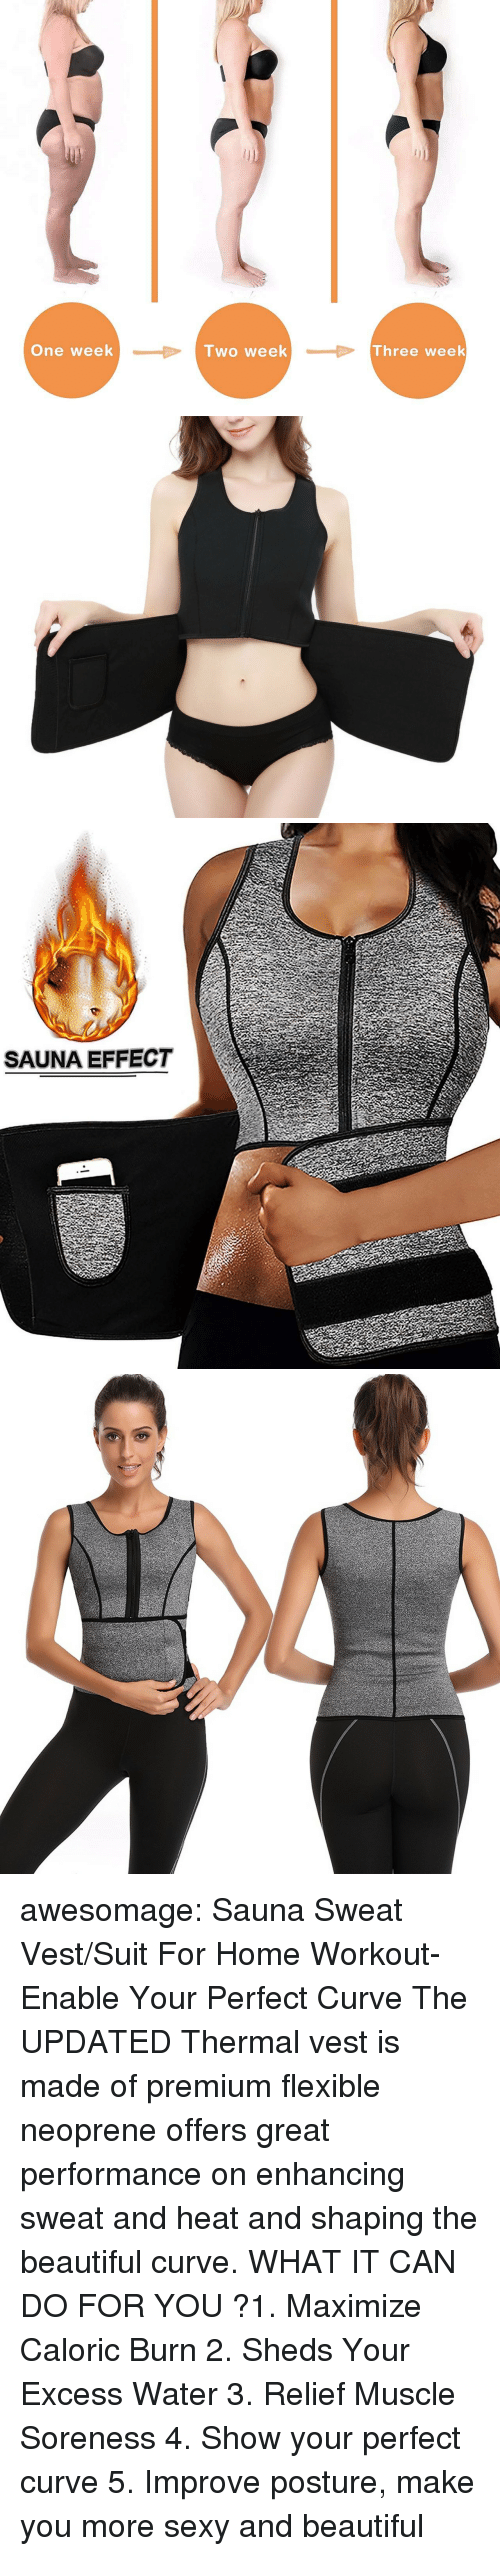 trimmer: One week  lwo week  Three week   SAUNA EFFECT awesomage:   Sauna Sweat Vest/Suit For Home Workout- Enable Your Perfect Curve The UPDATED Thermal vest is made of premium flexible neoprene offers great performance on enhancing sweat and heat and shaping the beautiful curve. WHAT IT CAN DO FOR YOU ?1. Maximize Caloric Burn 2. Sheds Your Excess Water 3. Relief Muscle Soreness 4. Show your perfect curve 5. Improve posture, make you more sexy and beautiful